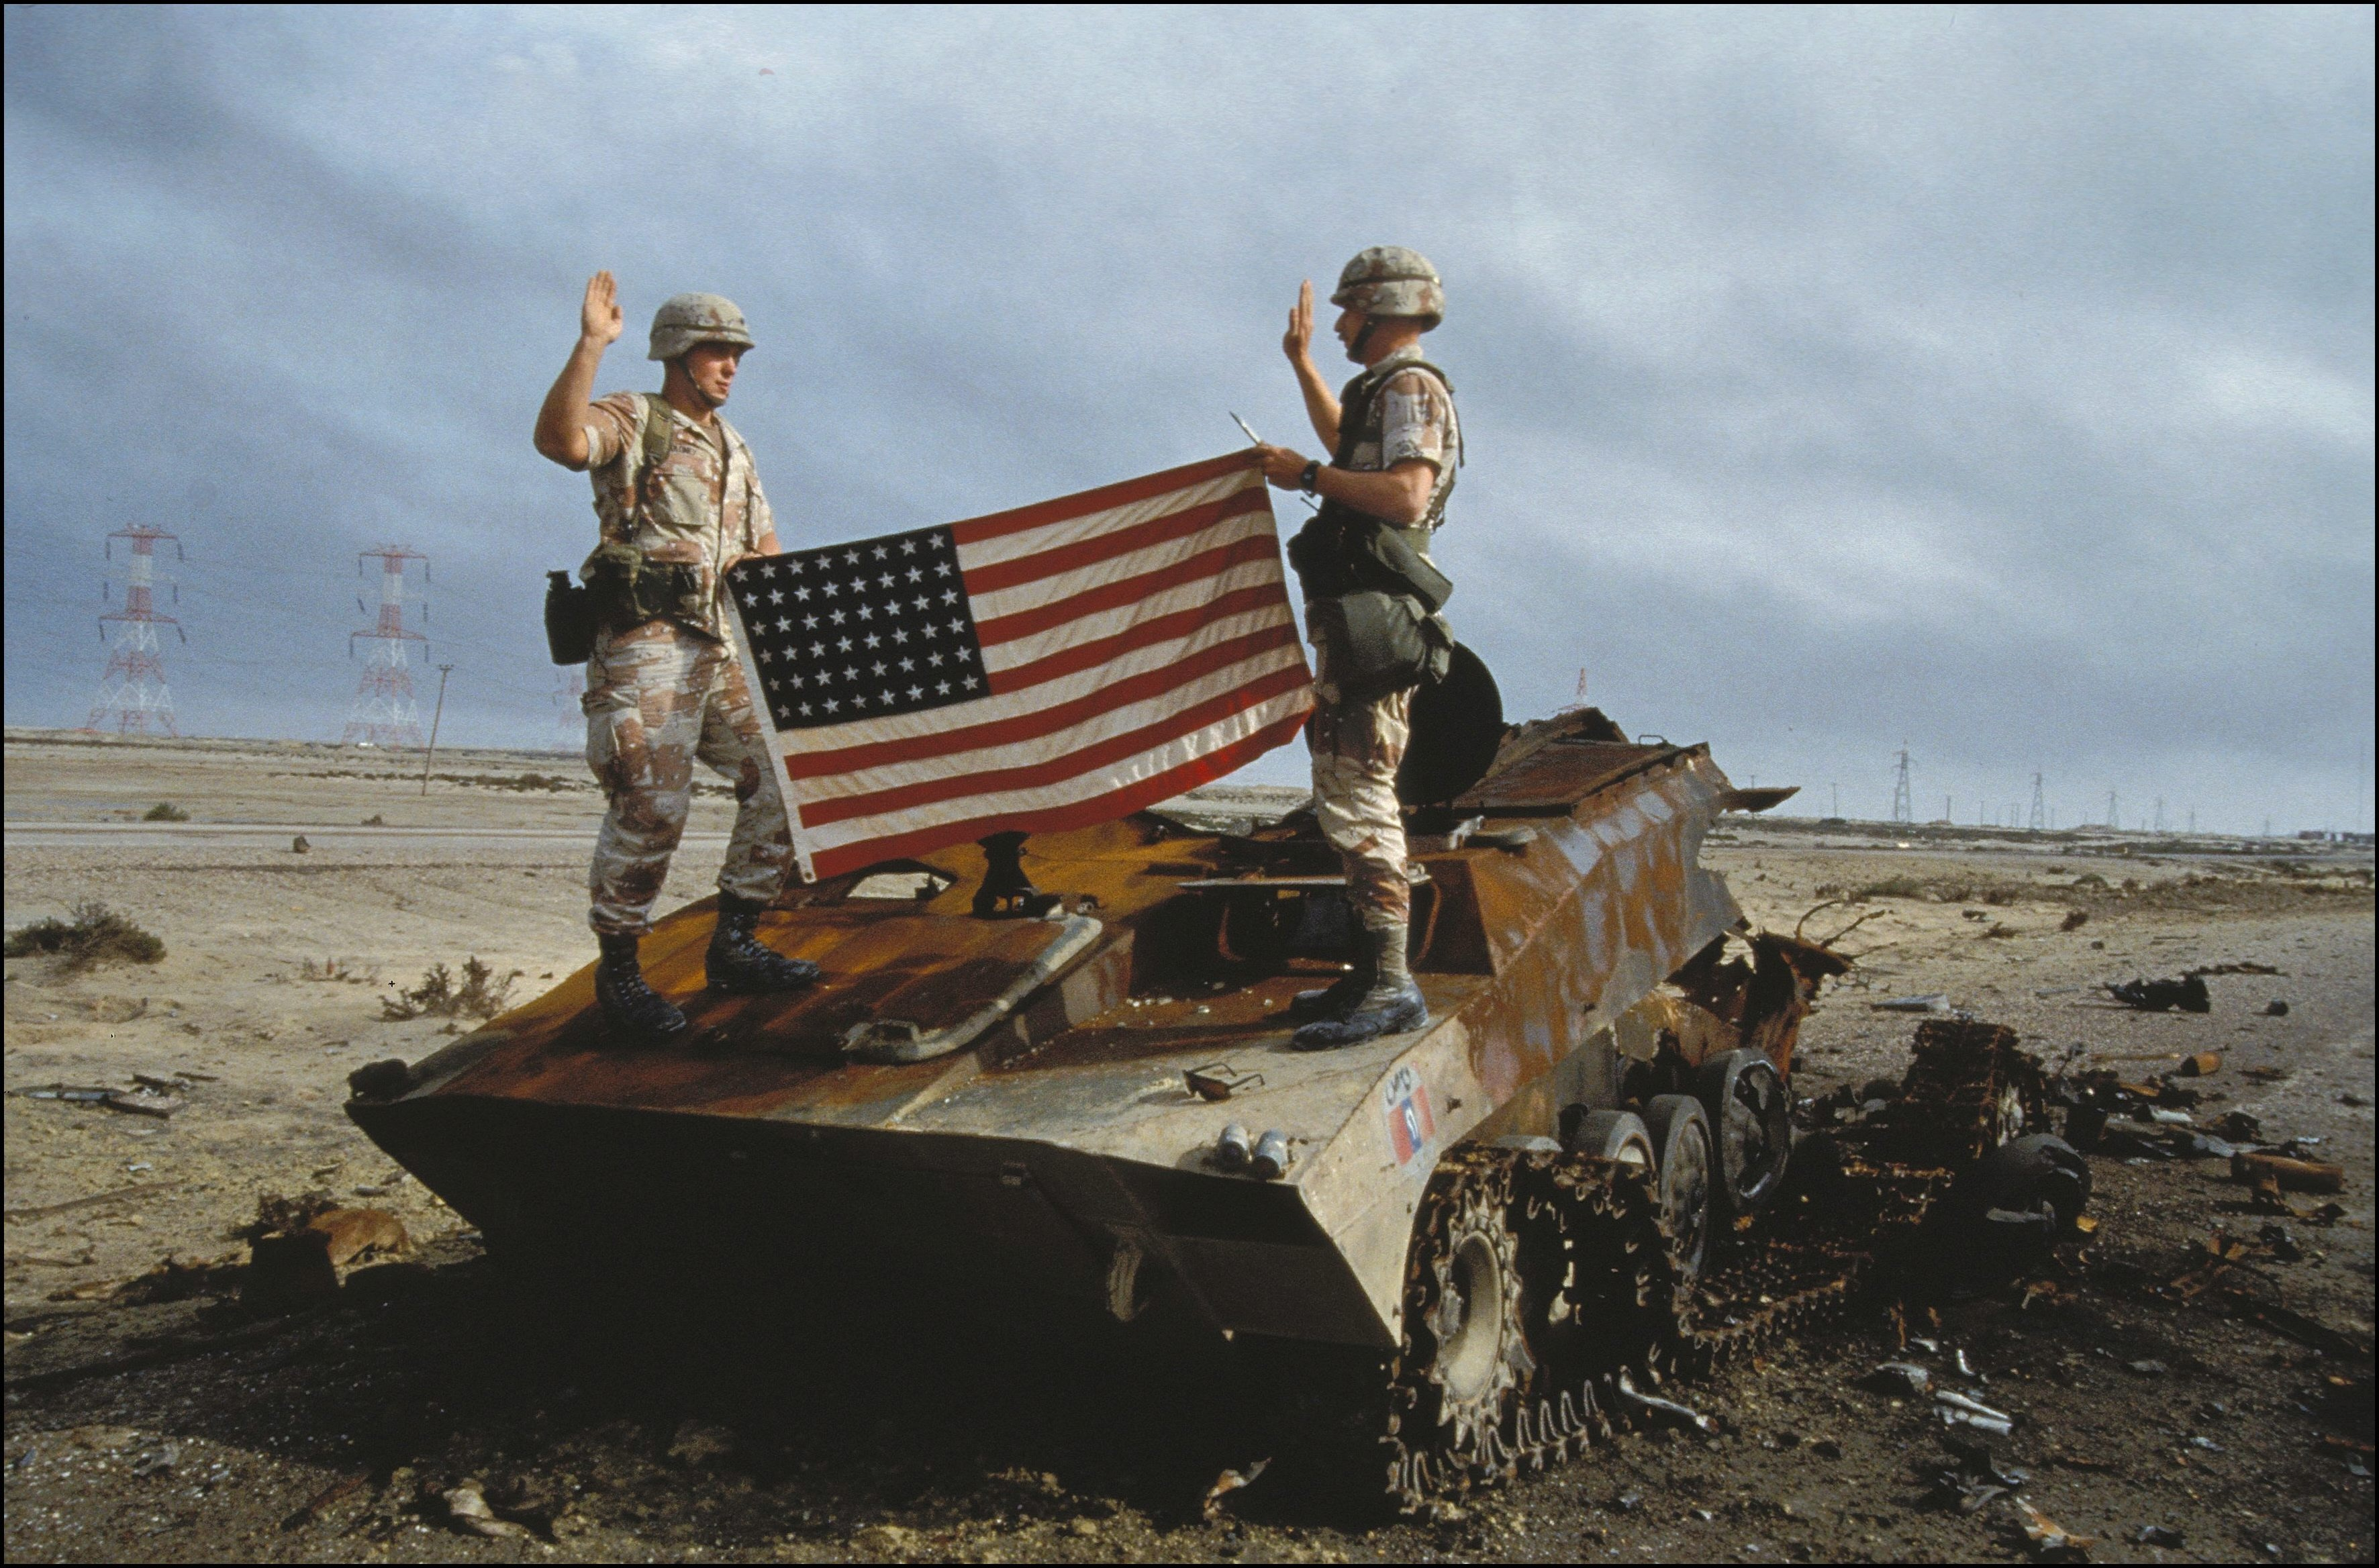 US soldiers take oath to the US army on an Iraqi destroyed tank in Iraq on February 27th, 1991.